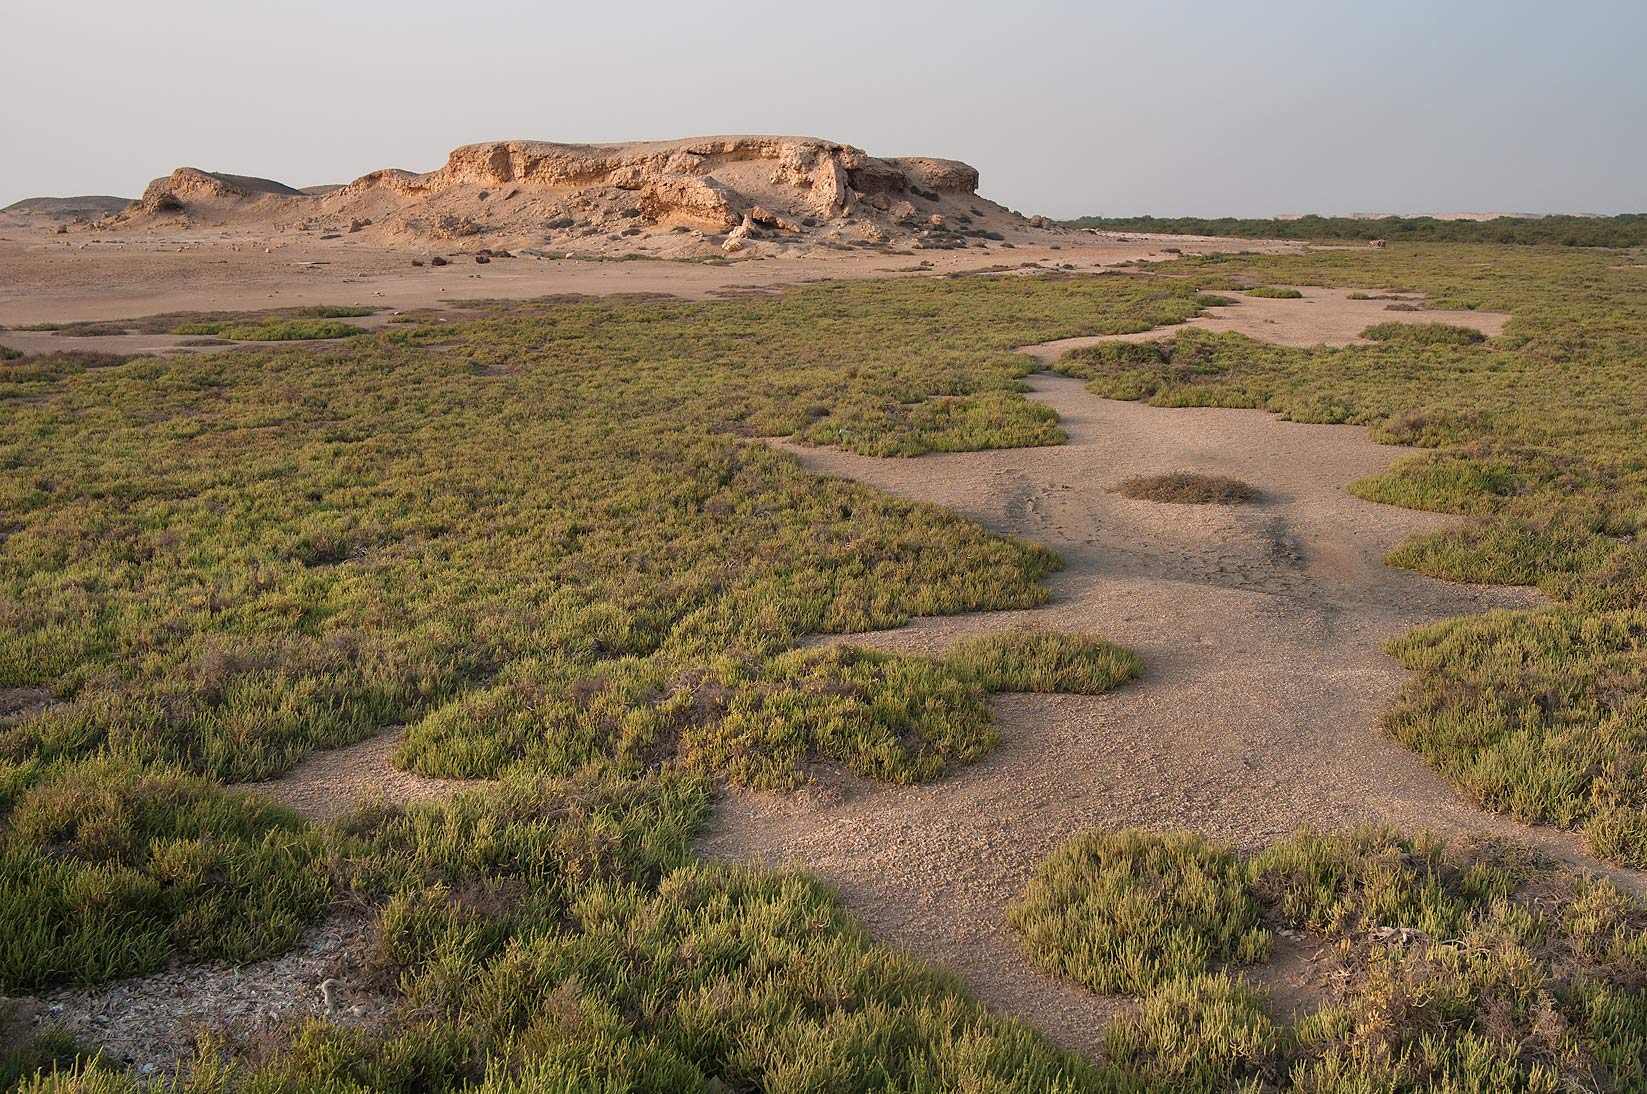 Salt marsh overgrown mostly with jointed...Jazirat Bin Ghanim). Al Khor, Qatar